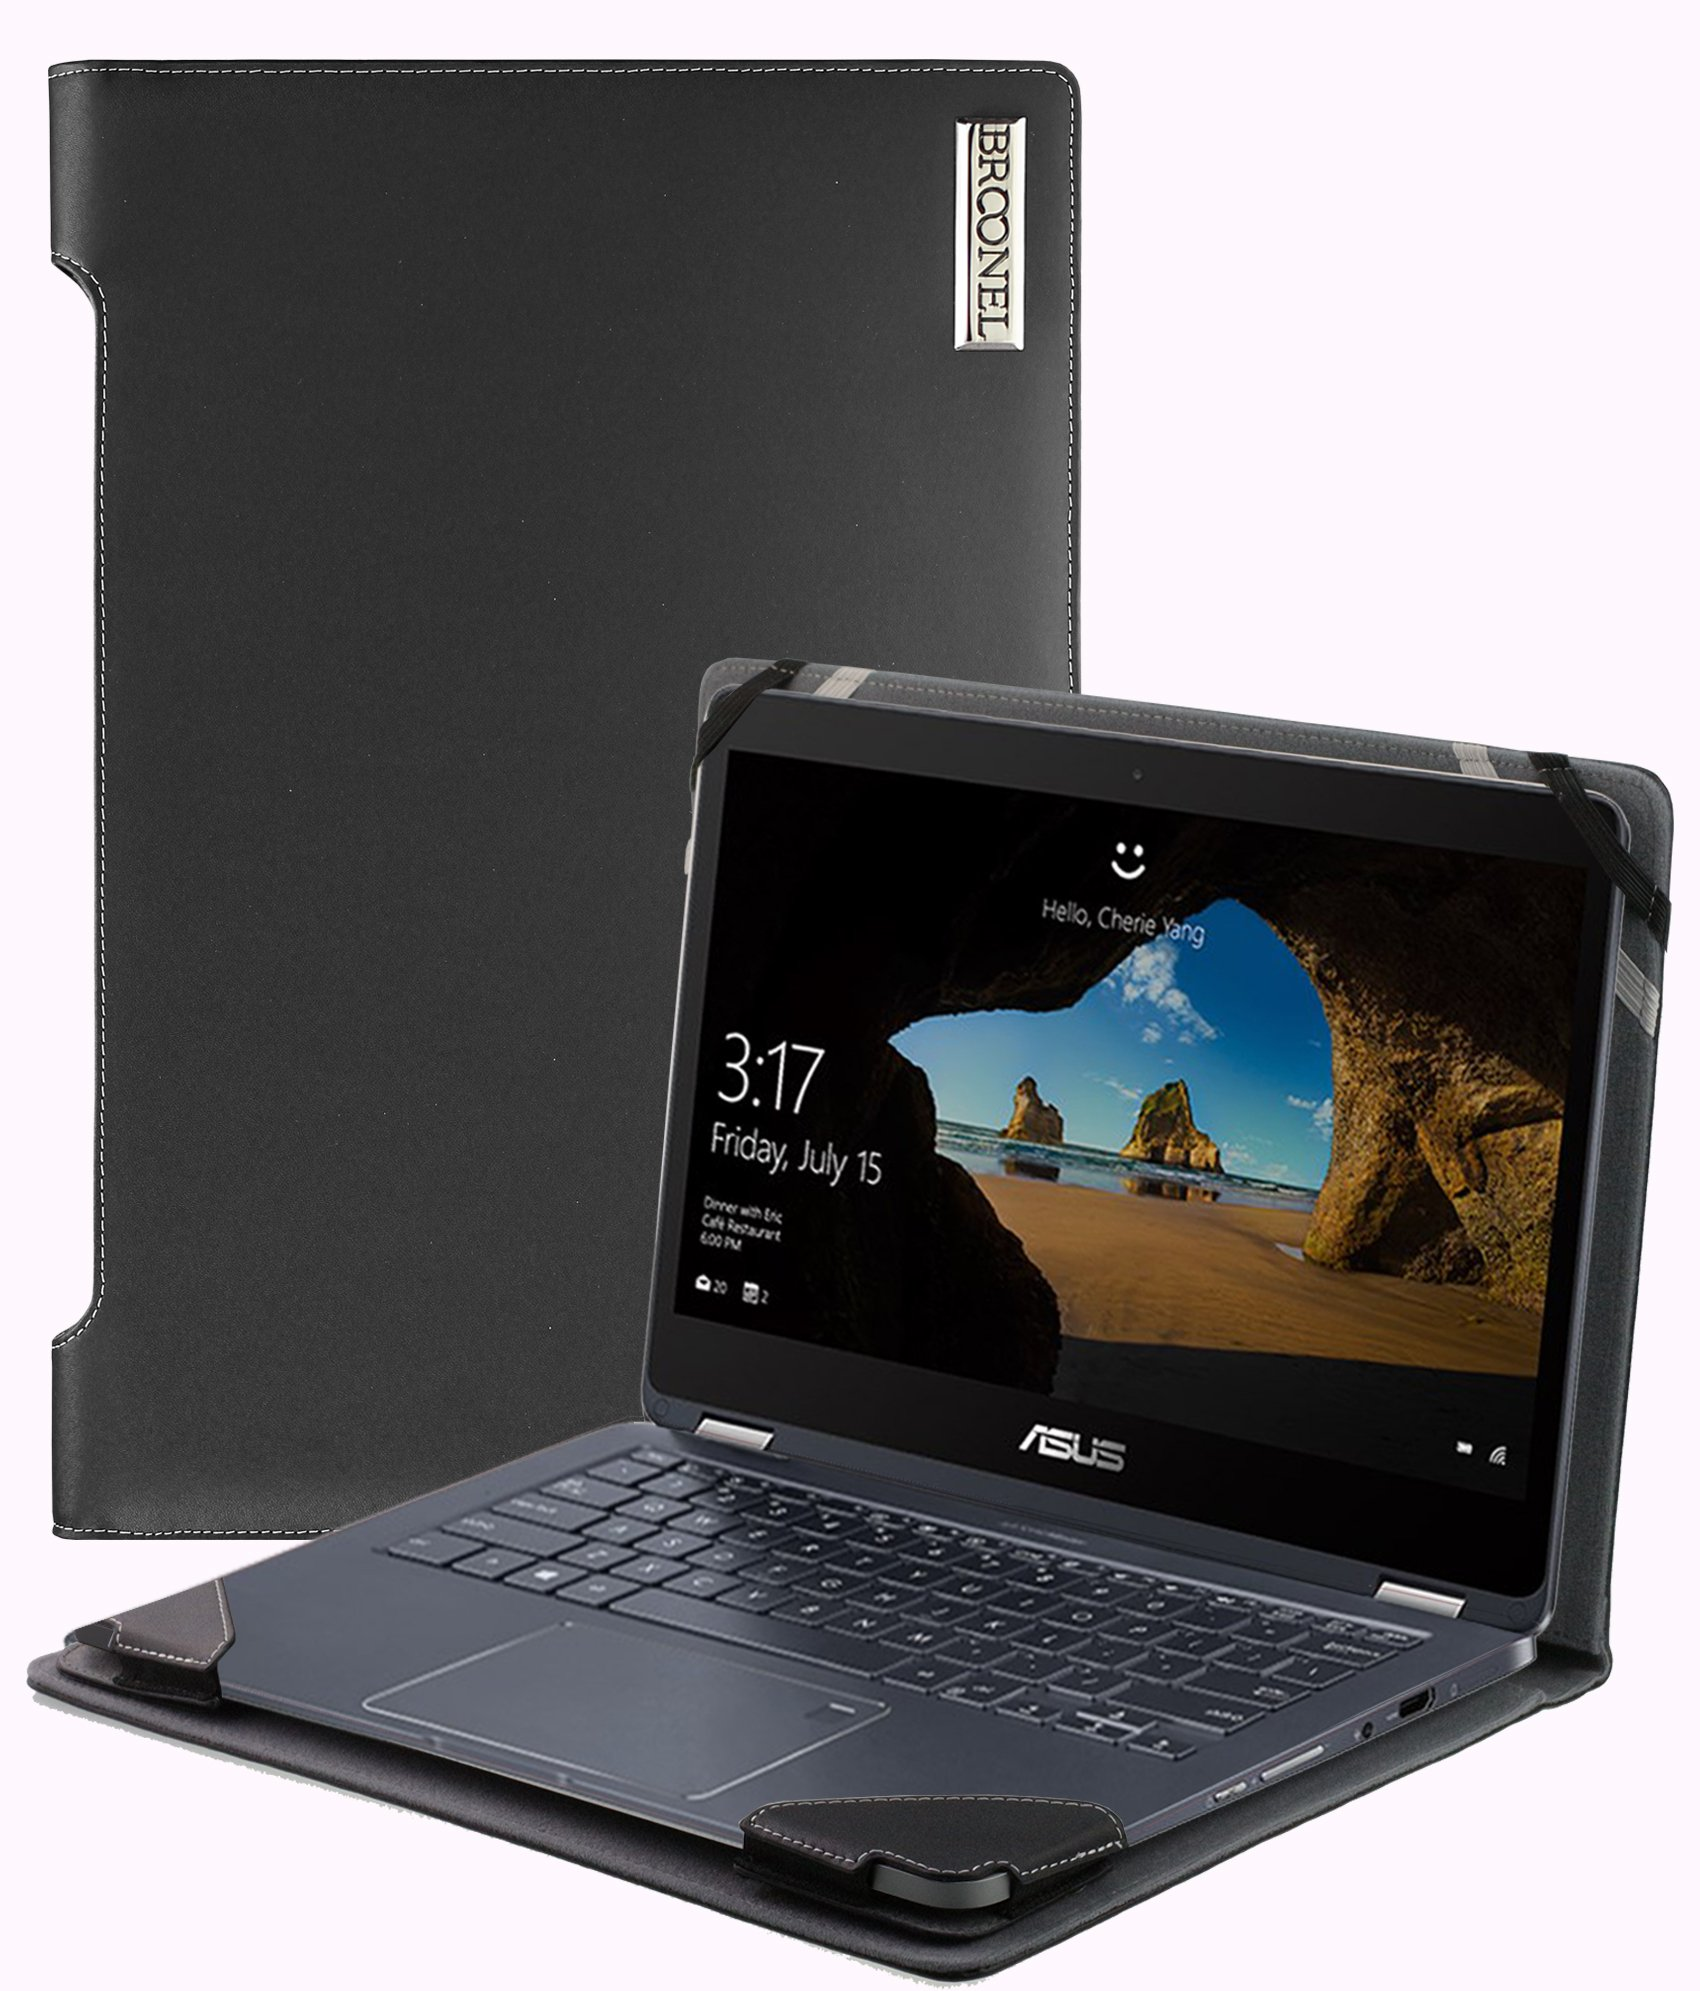 Broonel - Profile Series - Black Leather Luxury Laptop Case For The ASUS NovaGo TP370QL | 2-in-1 13.3 Inch